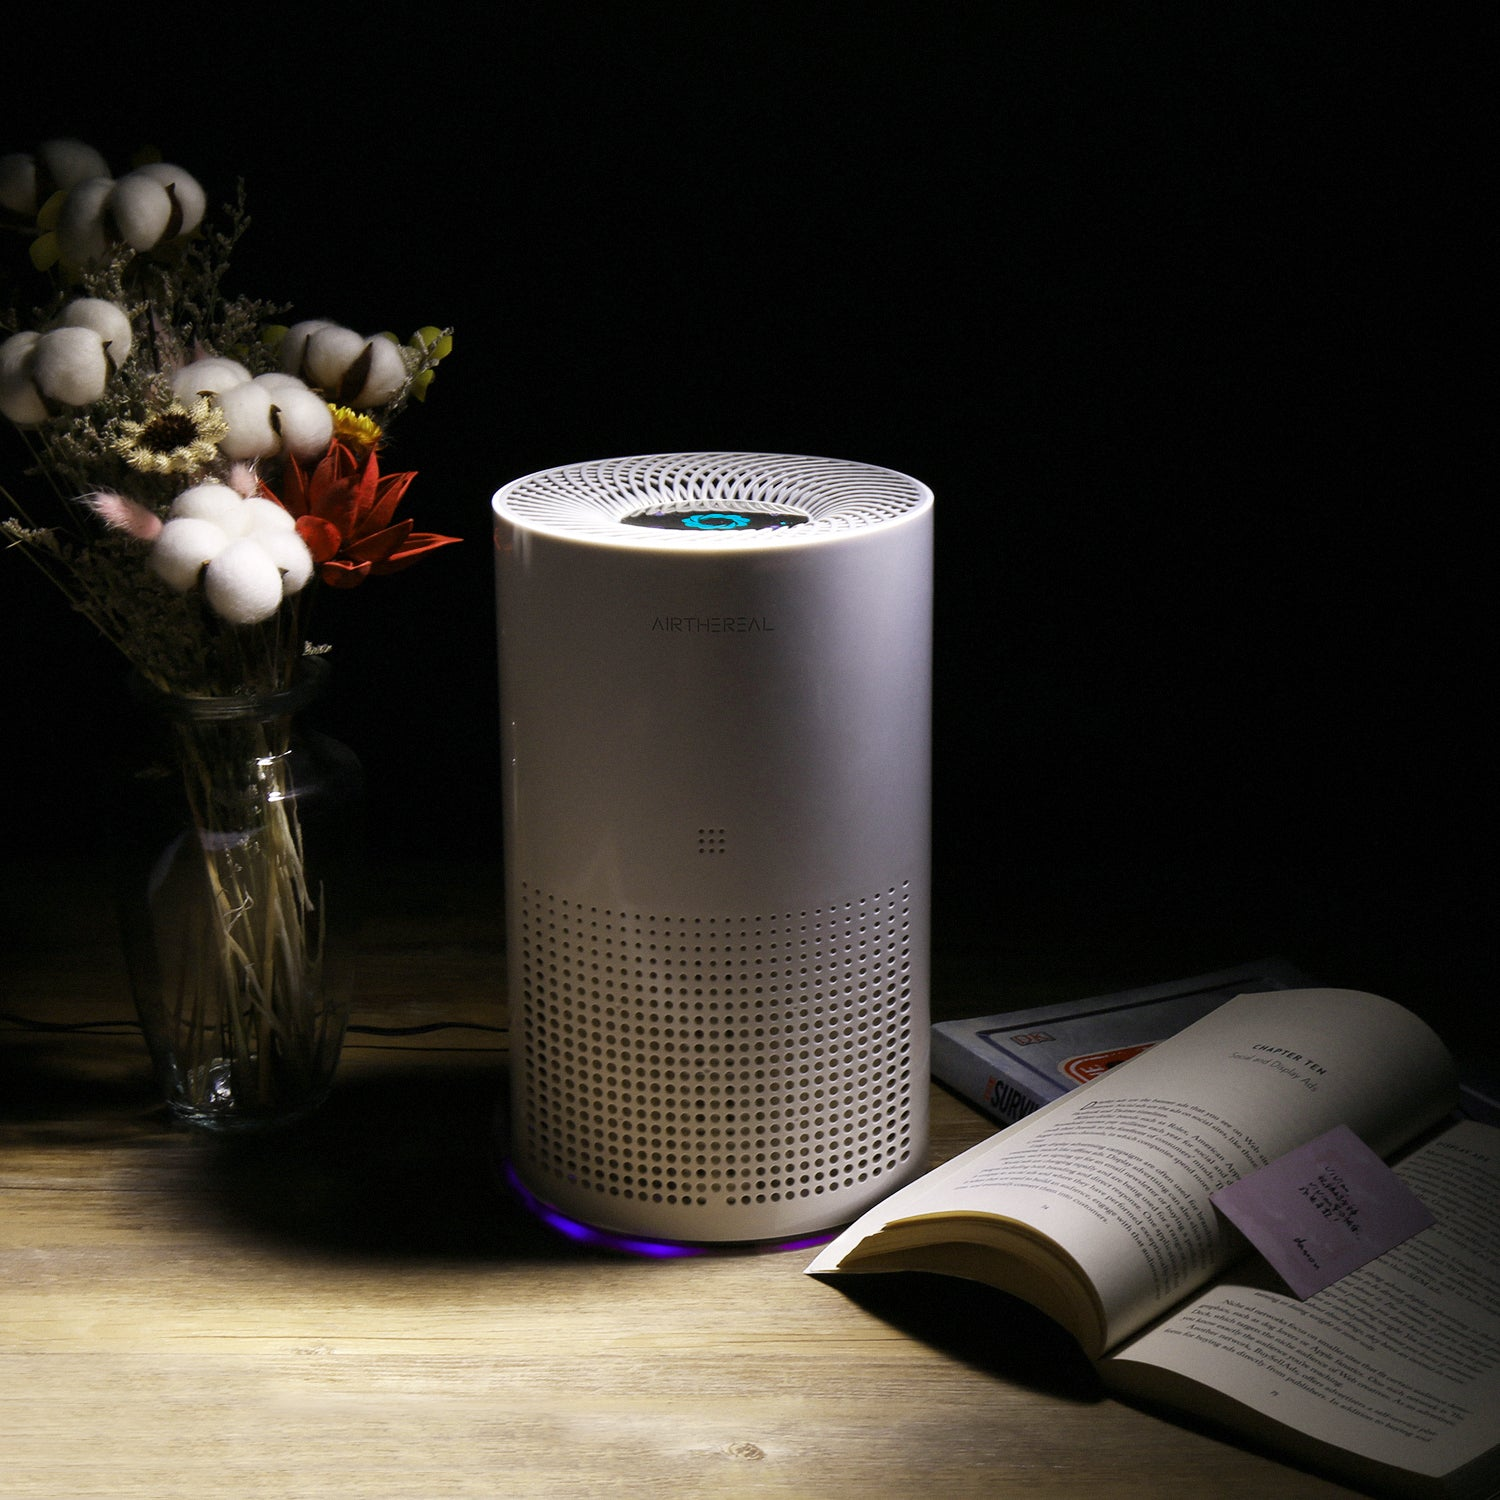 Airthereal Day Dawning ADH80 7-in-1 True HEPA Air Purifier 08